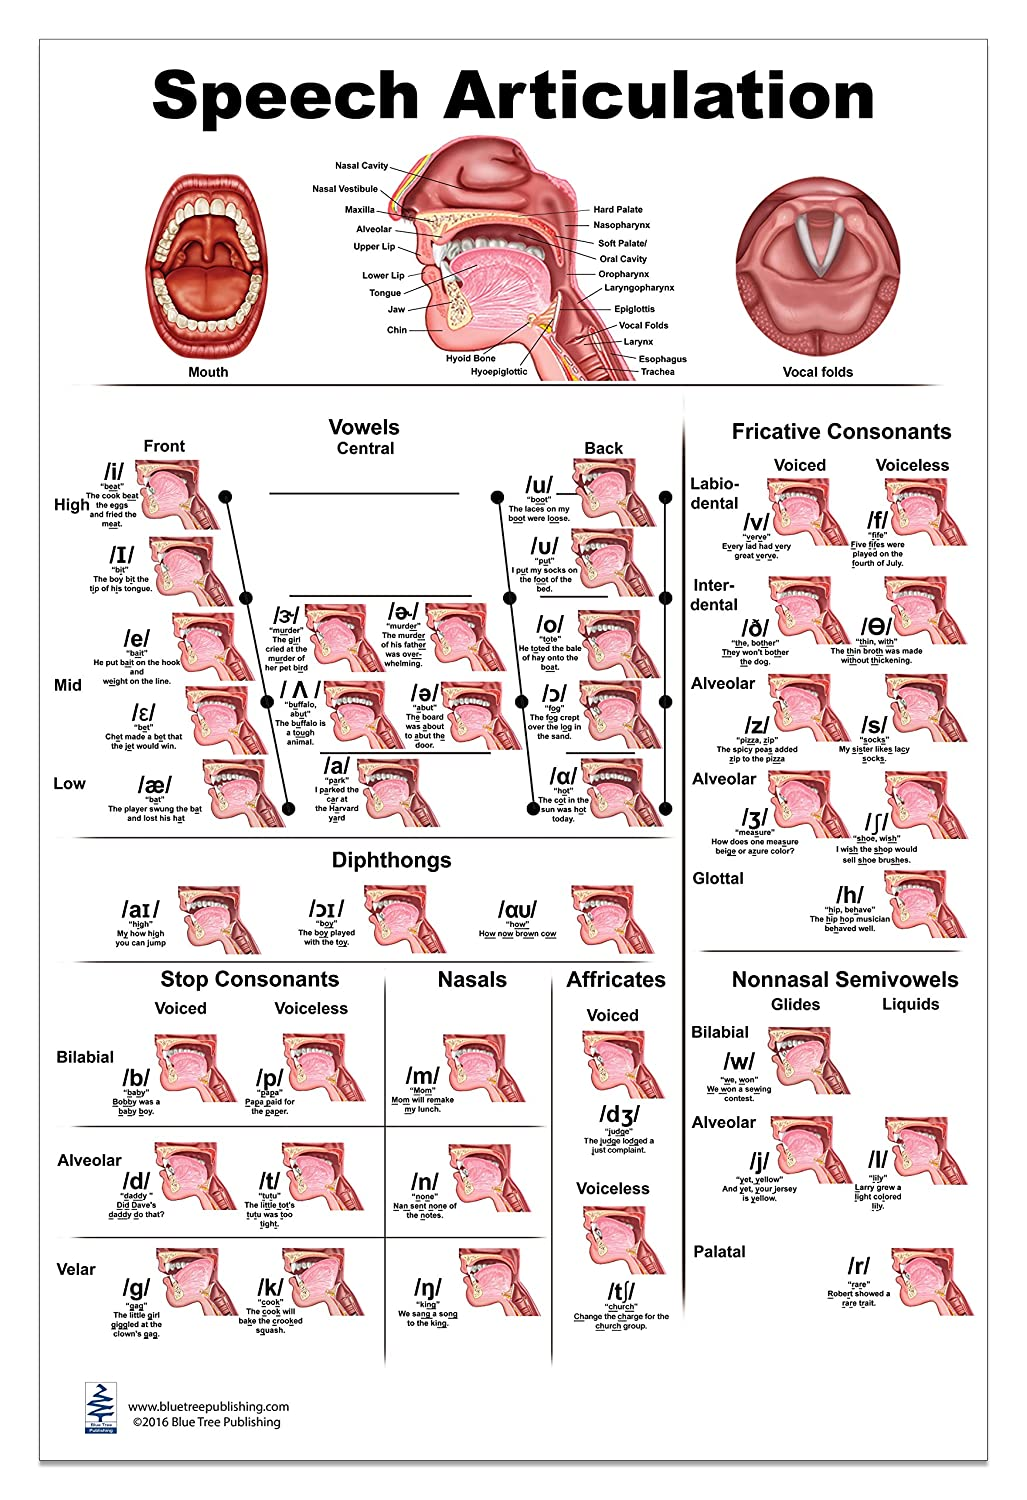 Amazon.com: Speech Articulation Anatomy Poster 24x36inch, Speech ...